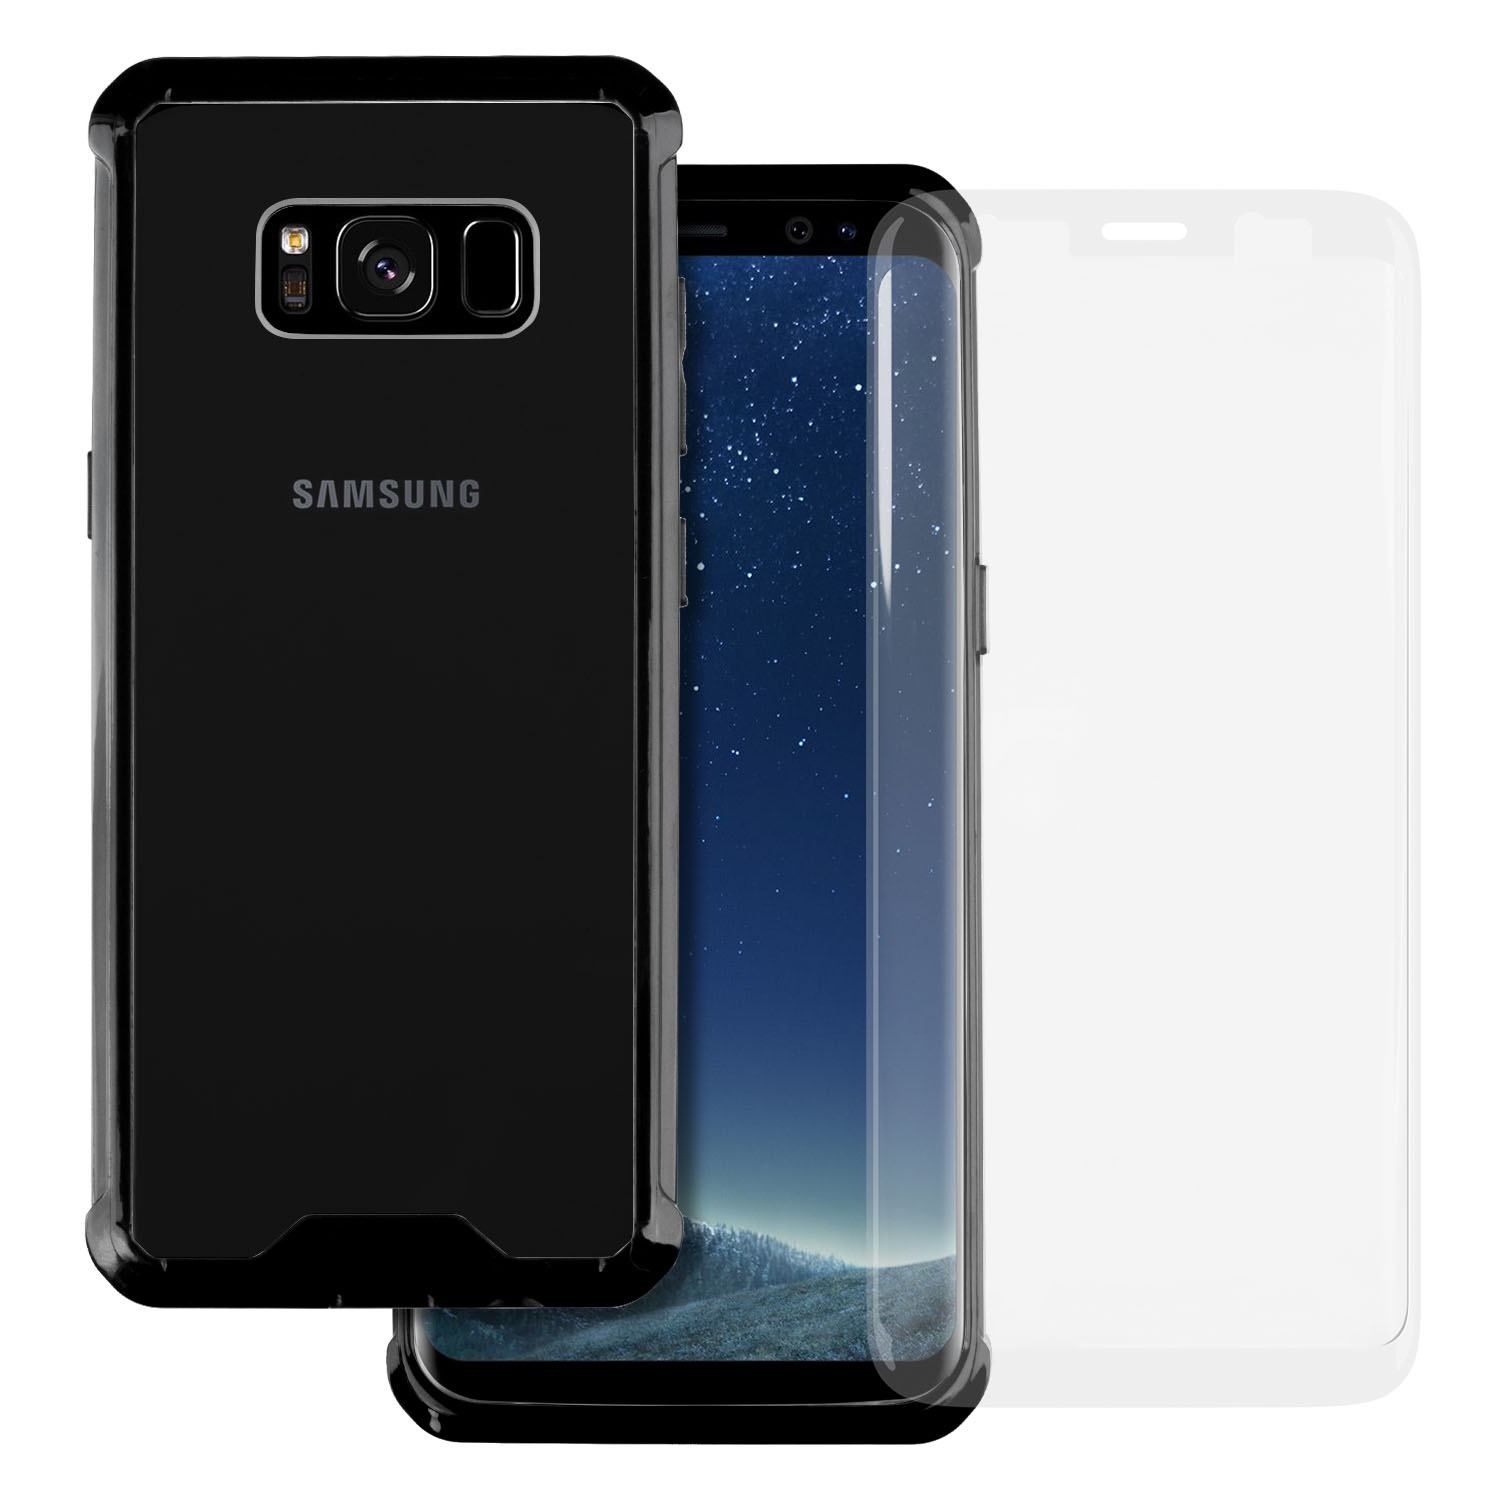 Samsung Galaxy S8 Plus TortugaArmor Corner Edge Air Pocket Bumper Case Hard Clear PC Backplate [Drop Protection] [Clear] Flexible TPU Case for Samsung Galaxy S8 Plus [ Including Tempered Glass ]